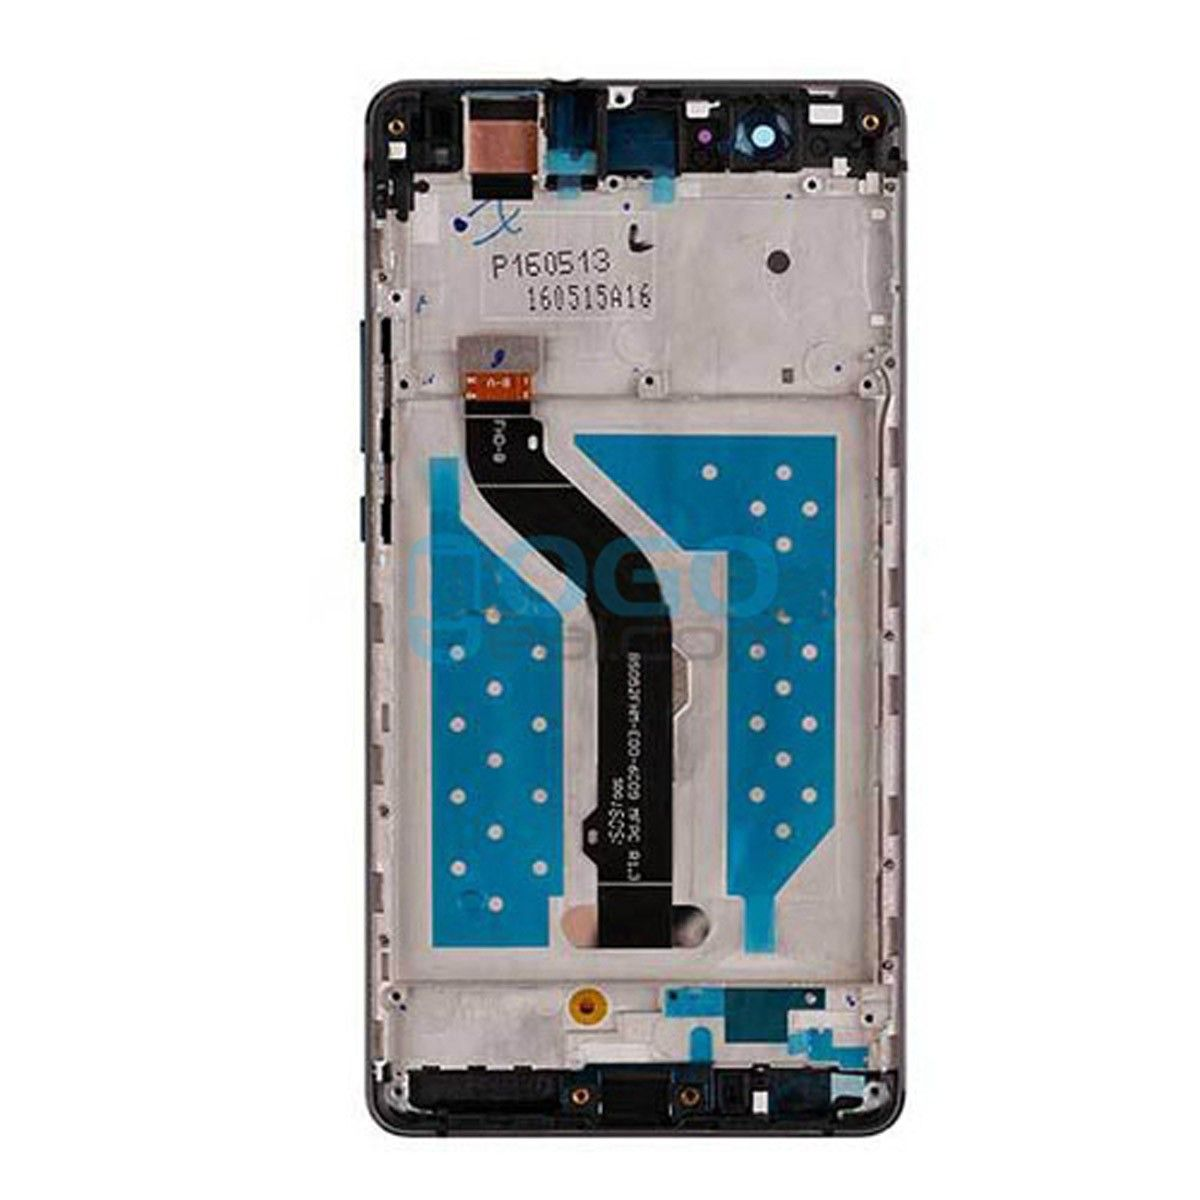 For Huawei Ascend P9 Lite LCD & Touch Screen Assembly With Frame Replacement- Black @ http://www.ogodeal.com/for-huawei-ascend-p9-lite-lcd-digitizer-touch-screen-assembly-with-frame-black.html